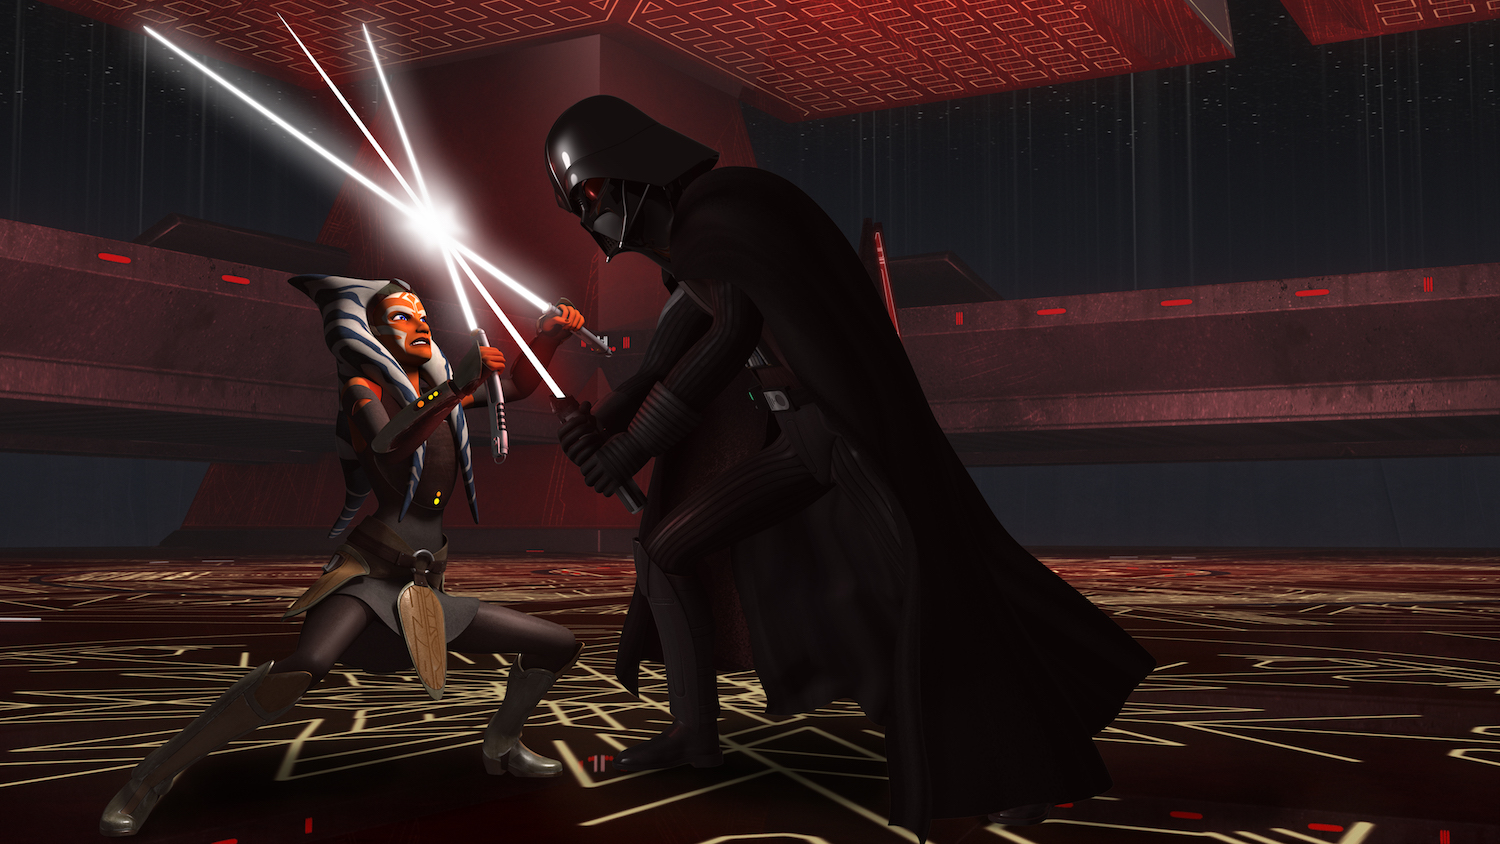 Twilight of the Apprentice - Ahsoka and Vader fighting